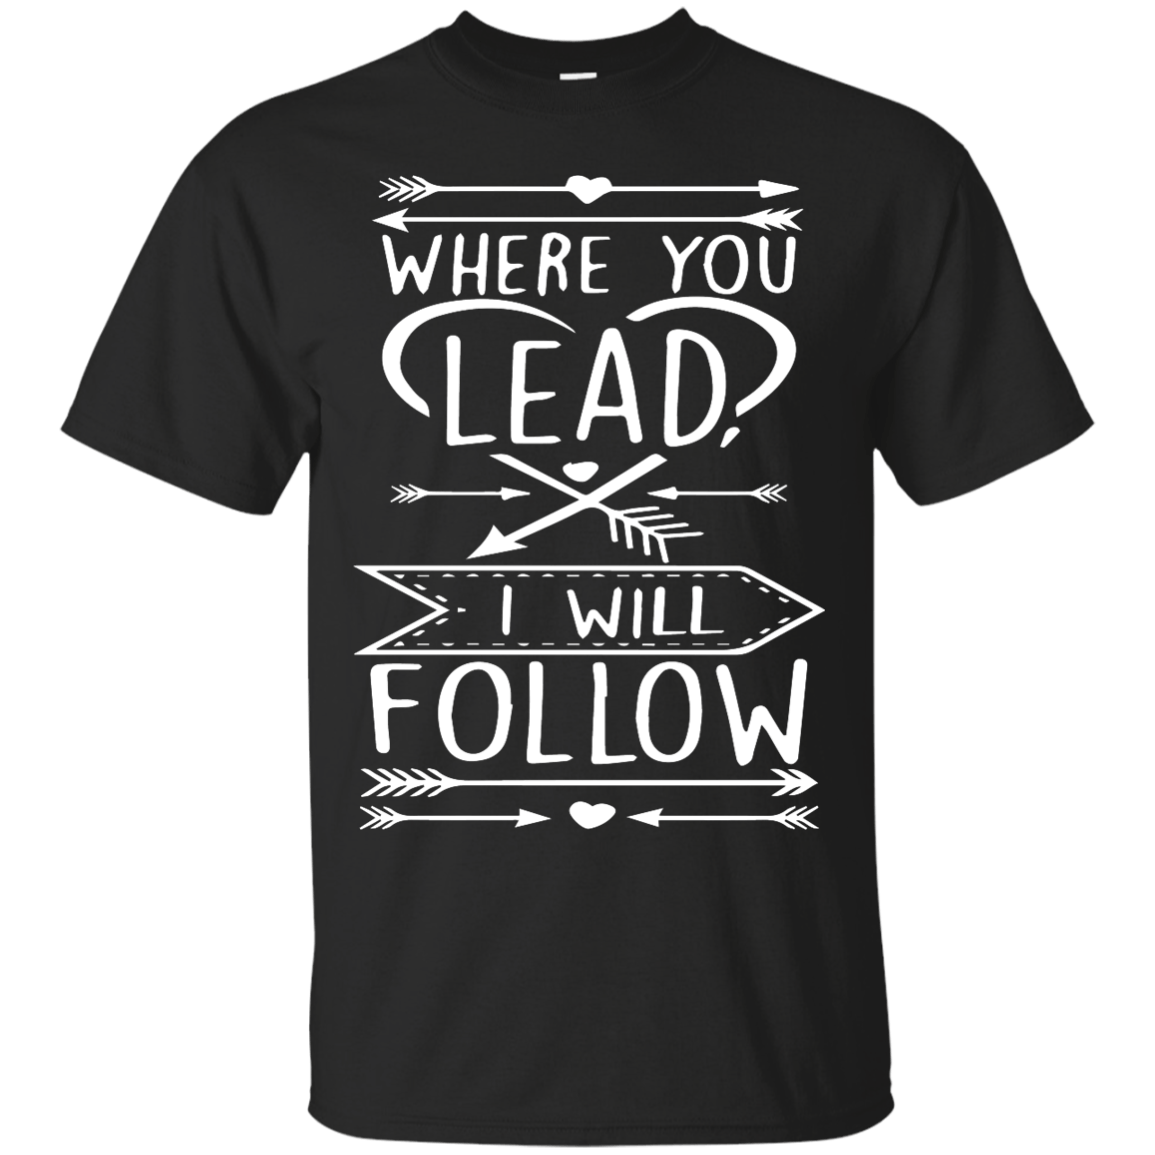 Gilmore Girls: Where You Lead I Will Follow Shirt